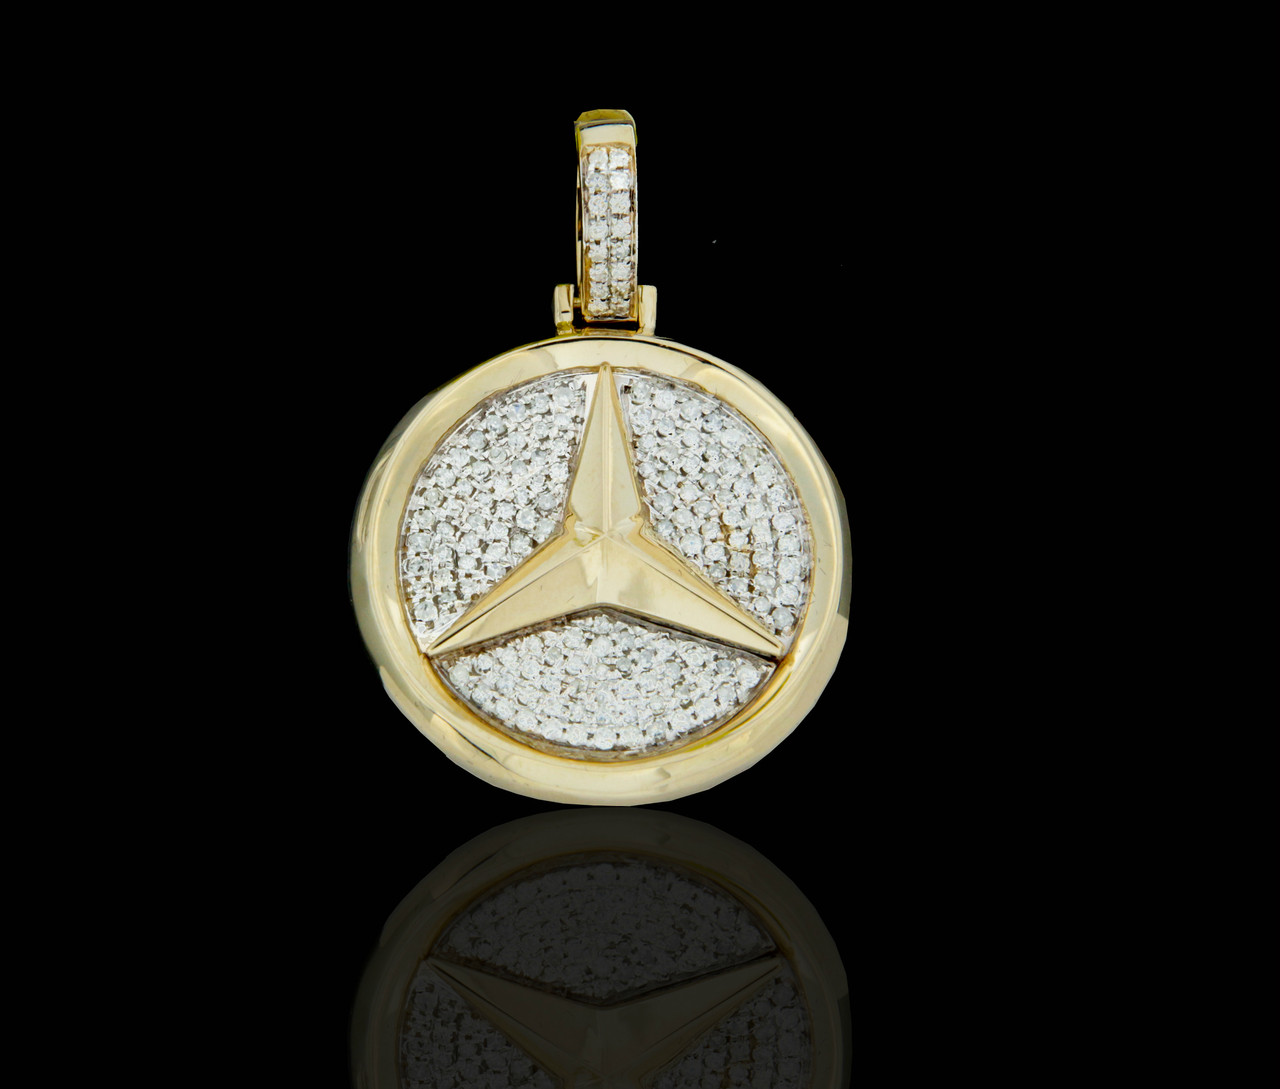 10k gold diamonds mercedes benz pendant king for Mercedes benz earrings